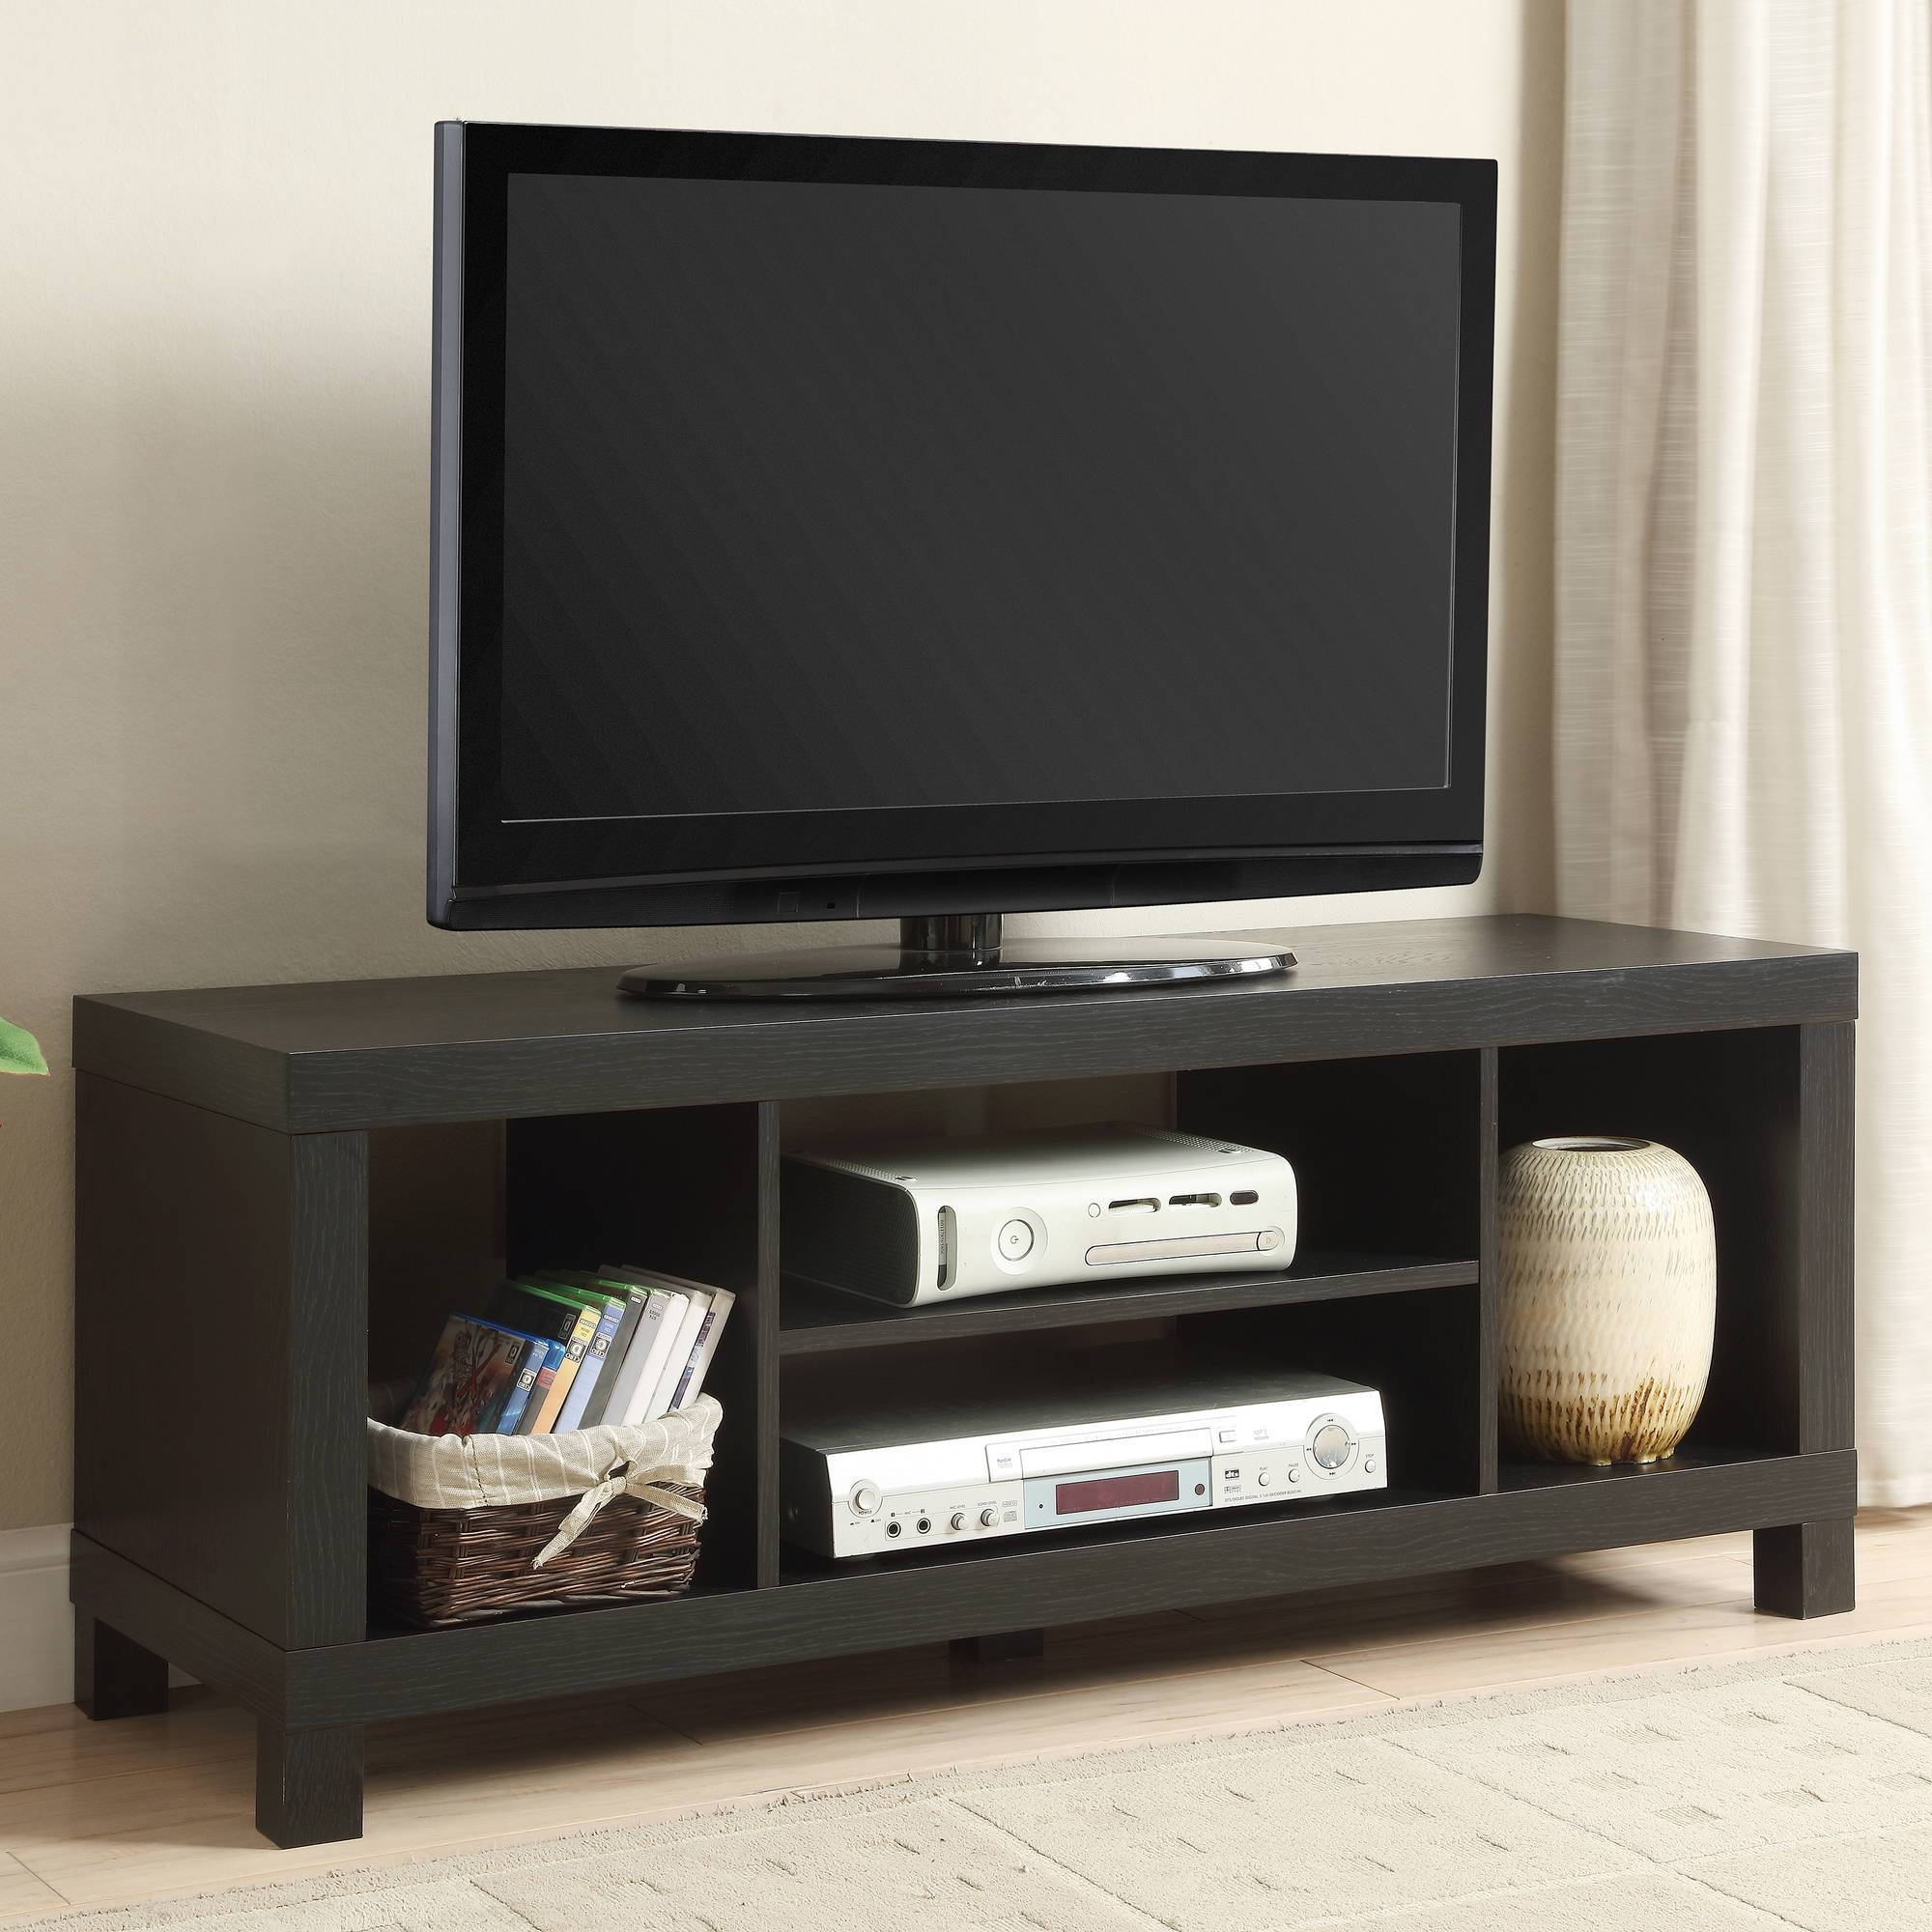 Buying Guide For Small Tv Stands – Furniture Depot inside Unique Corner Tv Stands (Image 5 of 15)